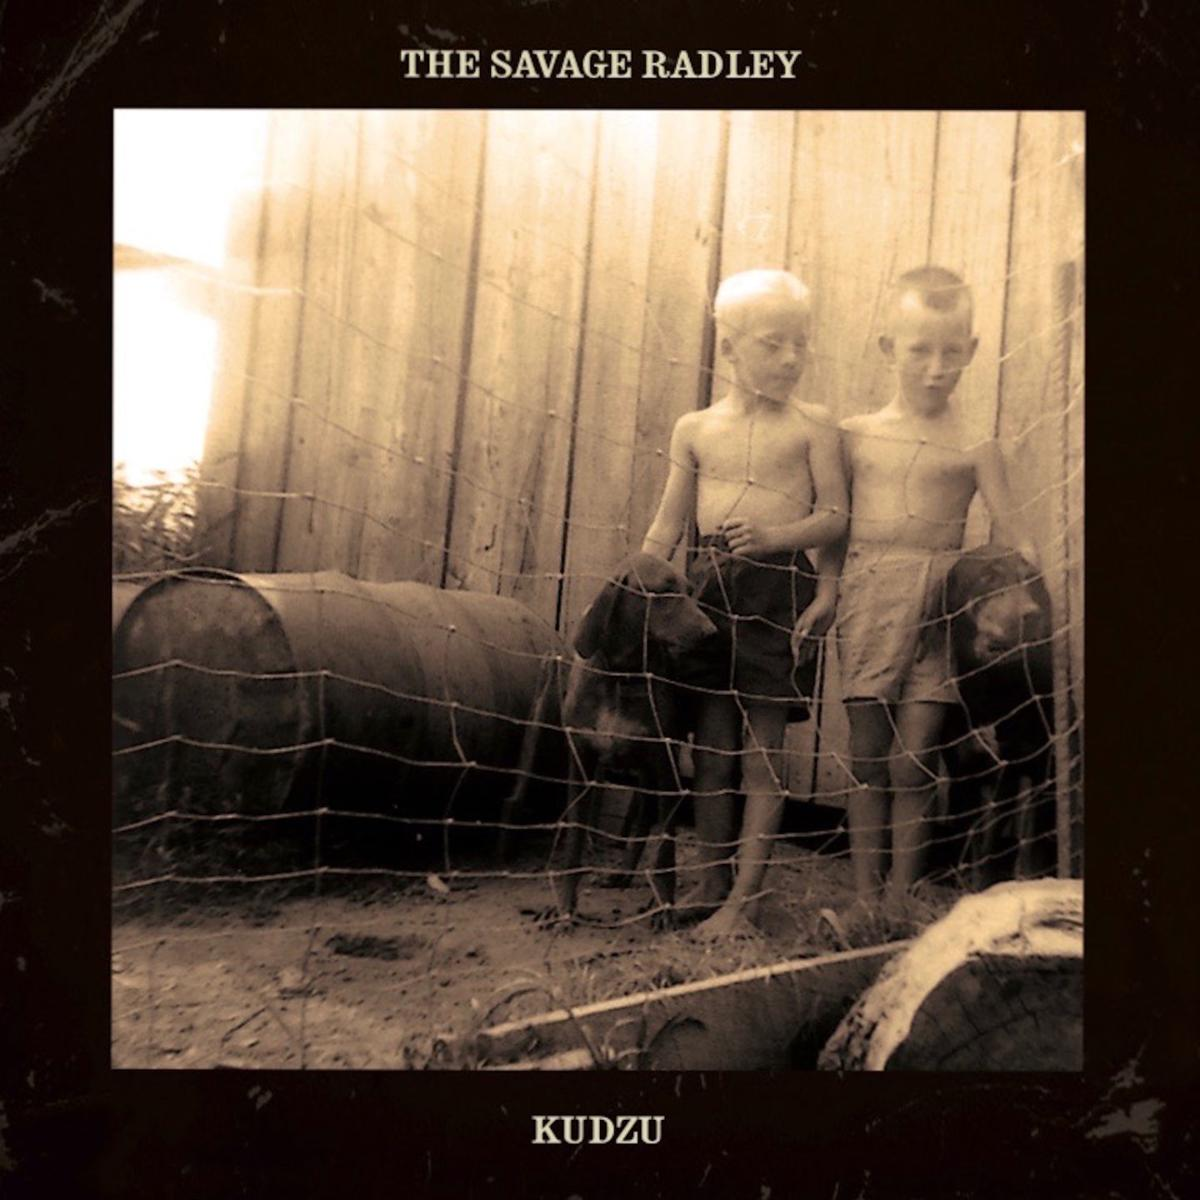 The Savage Radley, Kudzu album cover